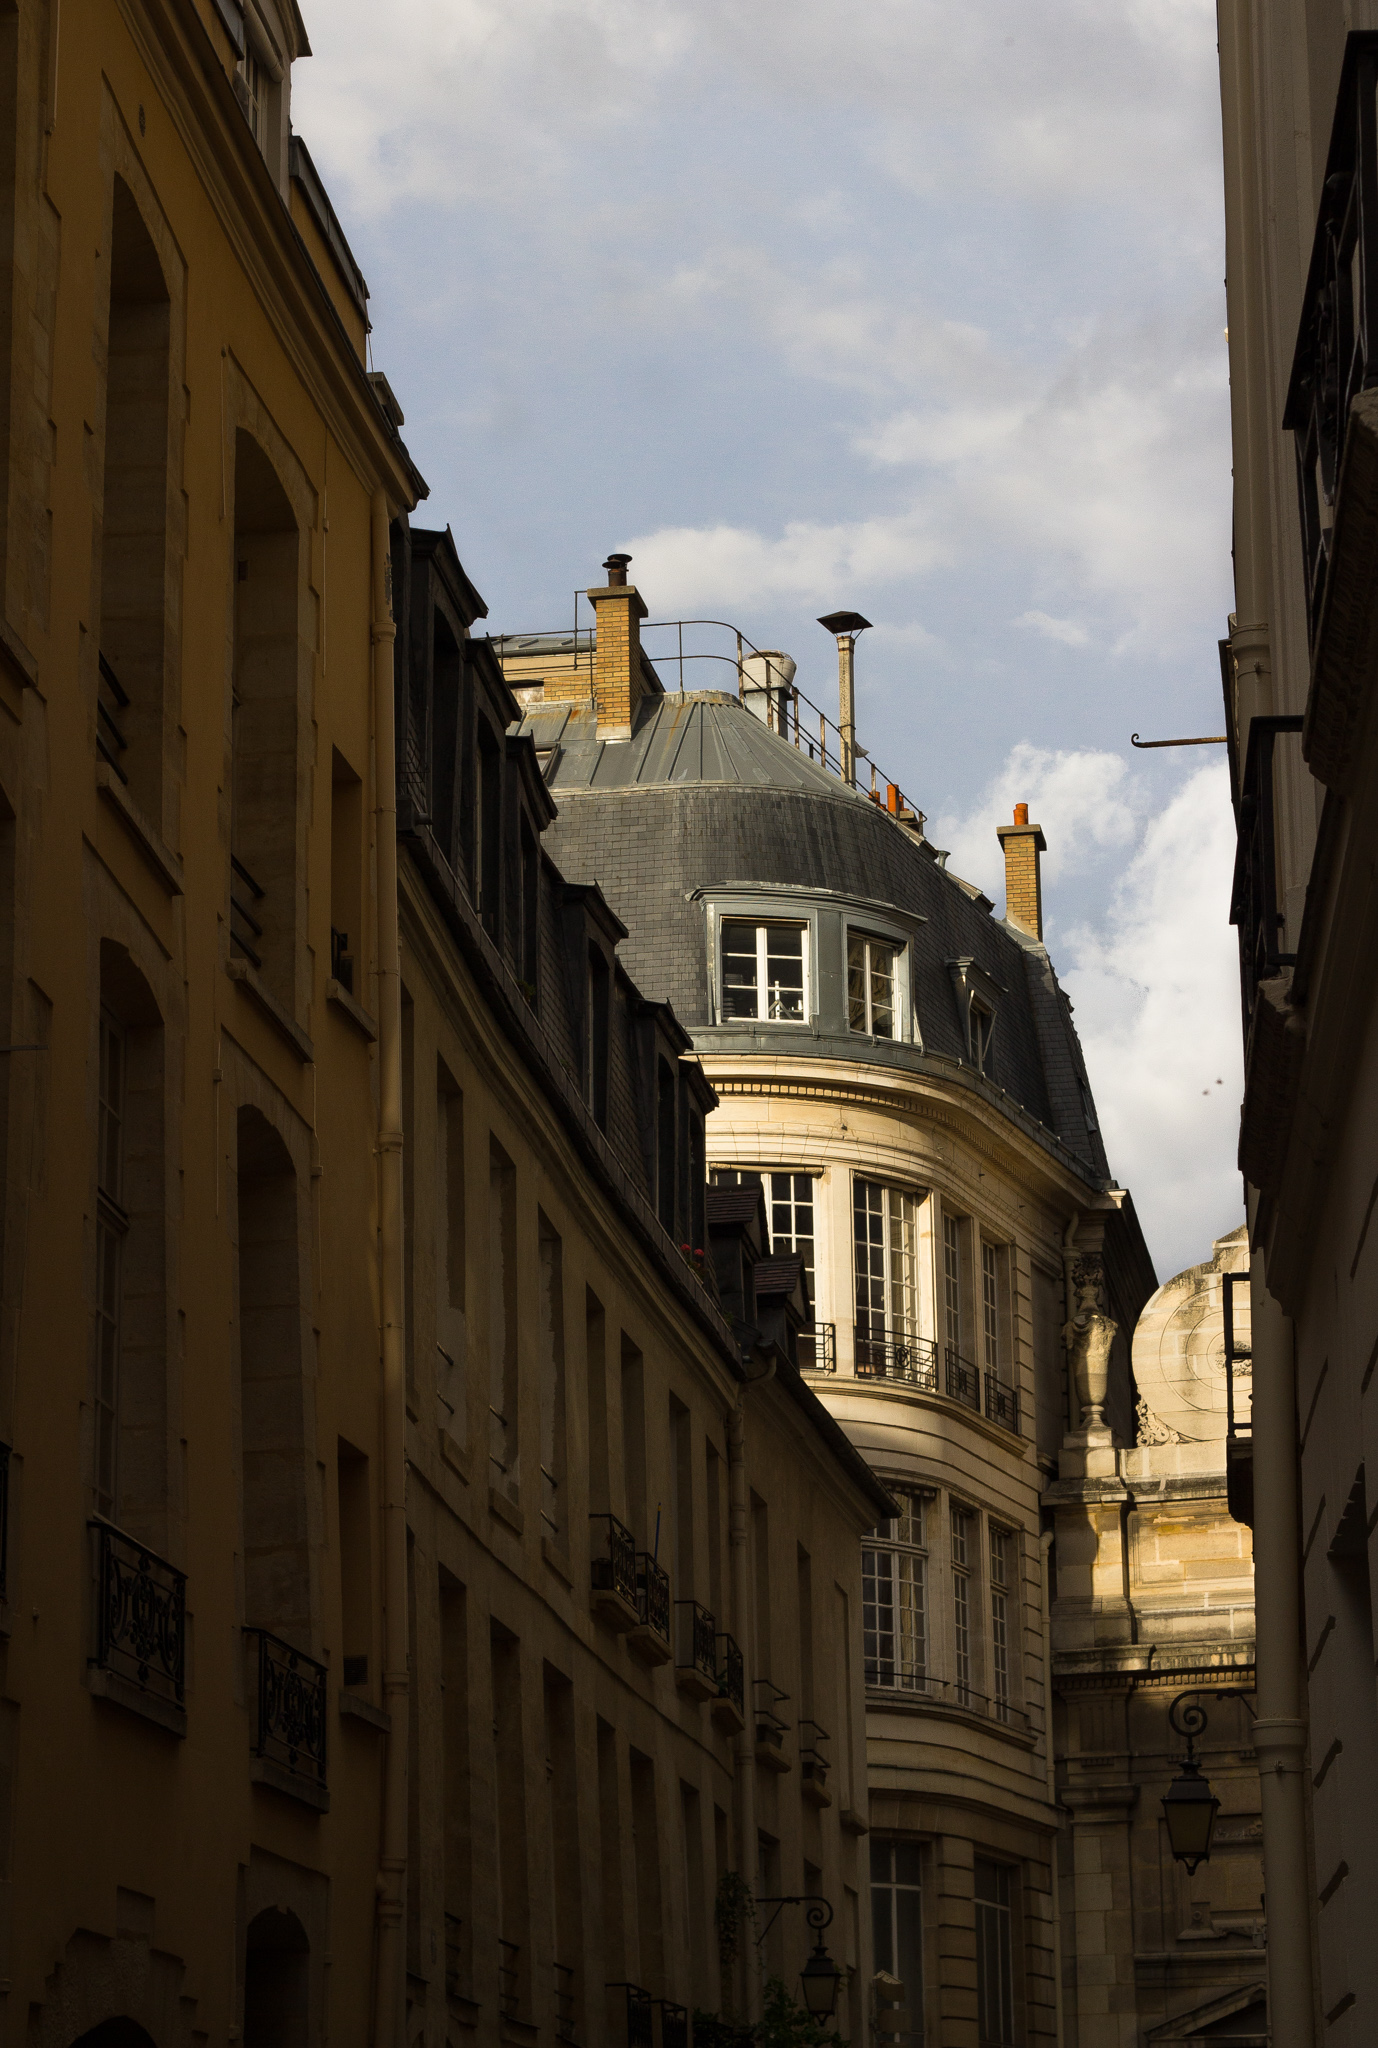 6262-rooftops-of-paris-architecture.jpg